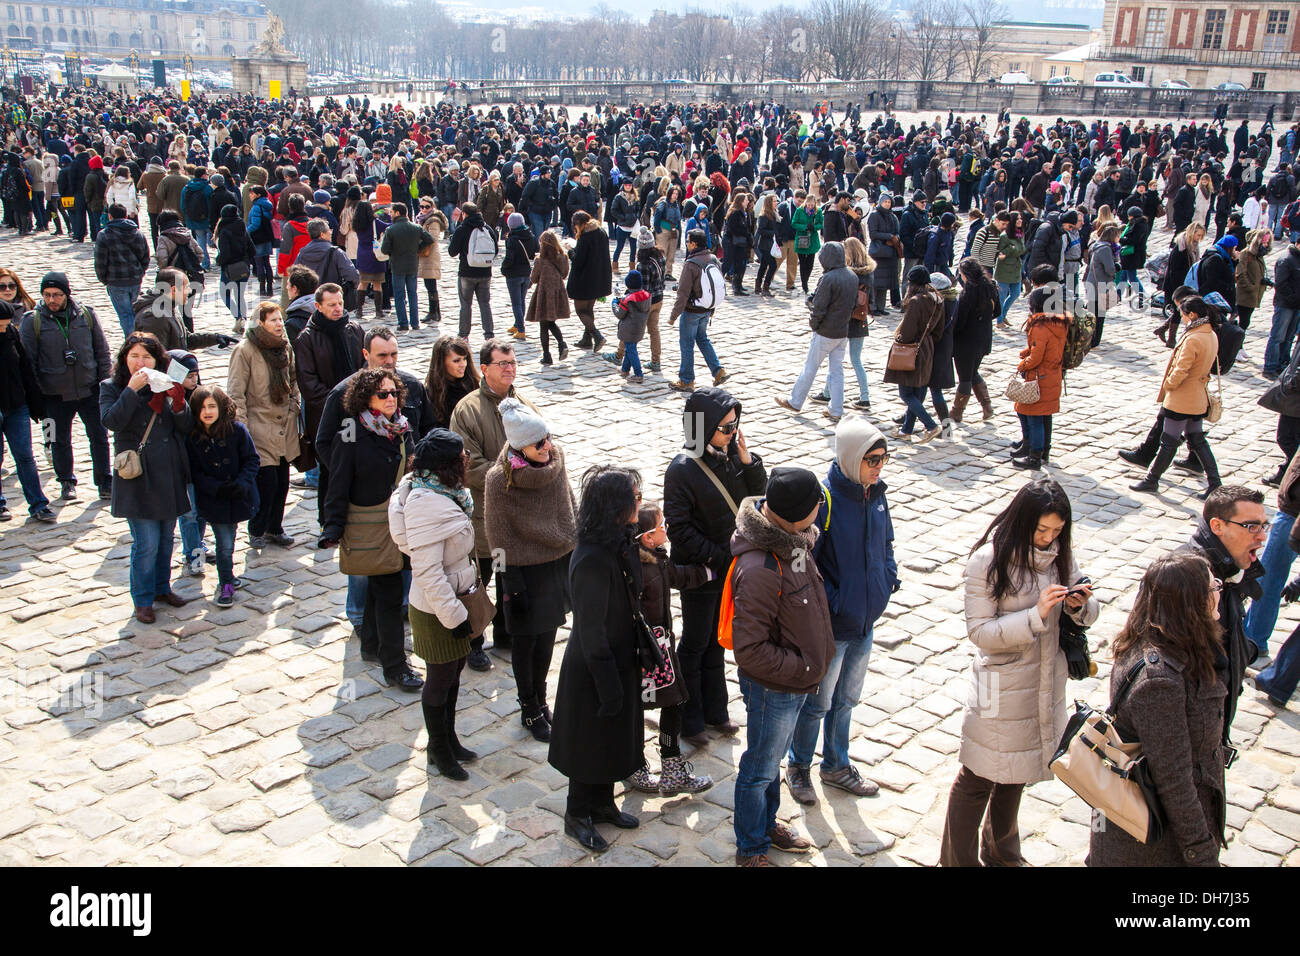 Image result for standing in line versaille palace